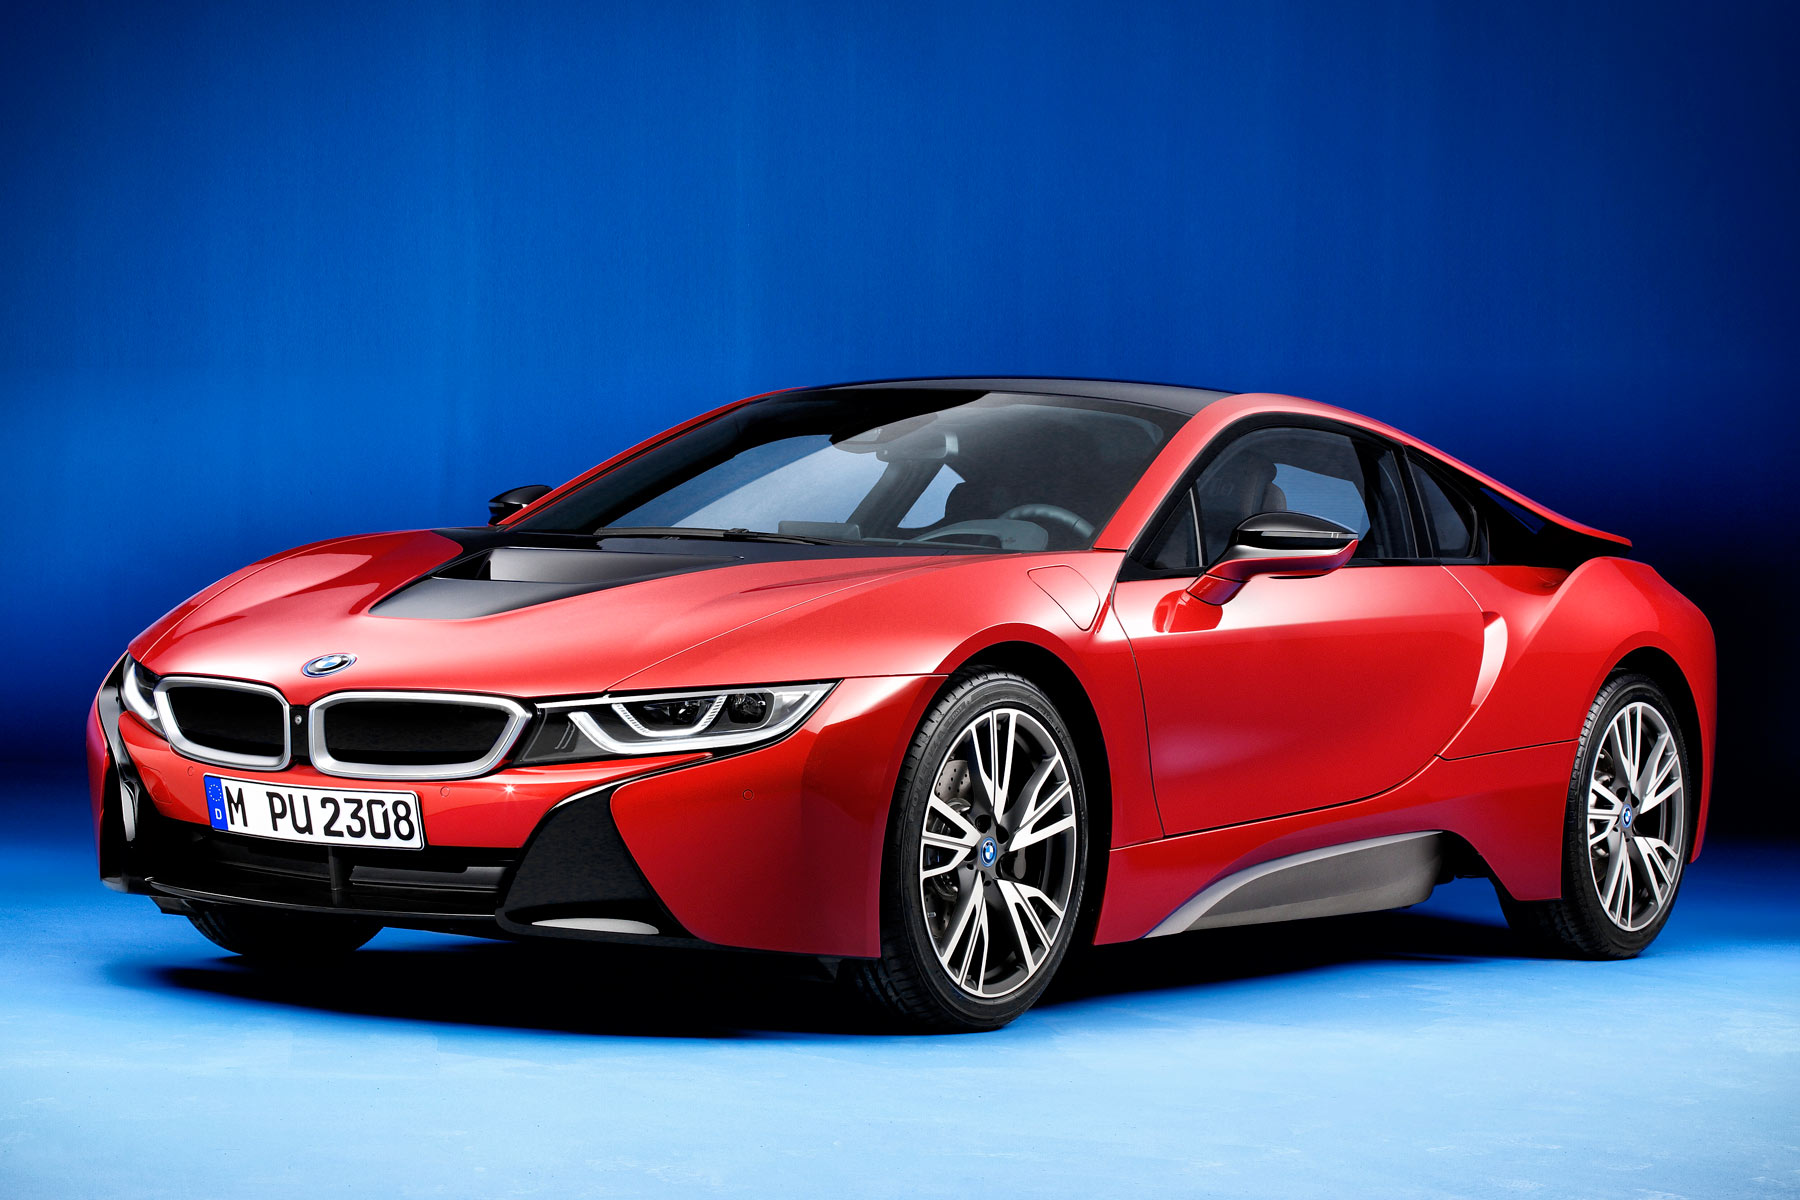 This limited edition BMW i8 has special paint and double red stitching